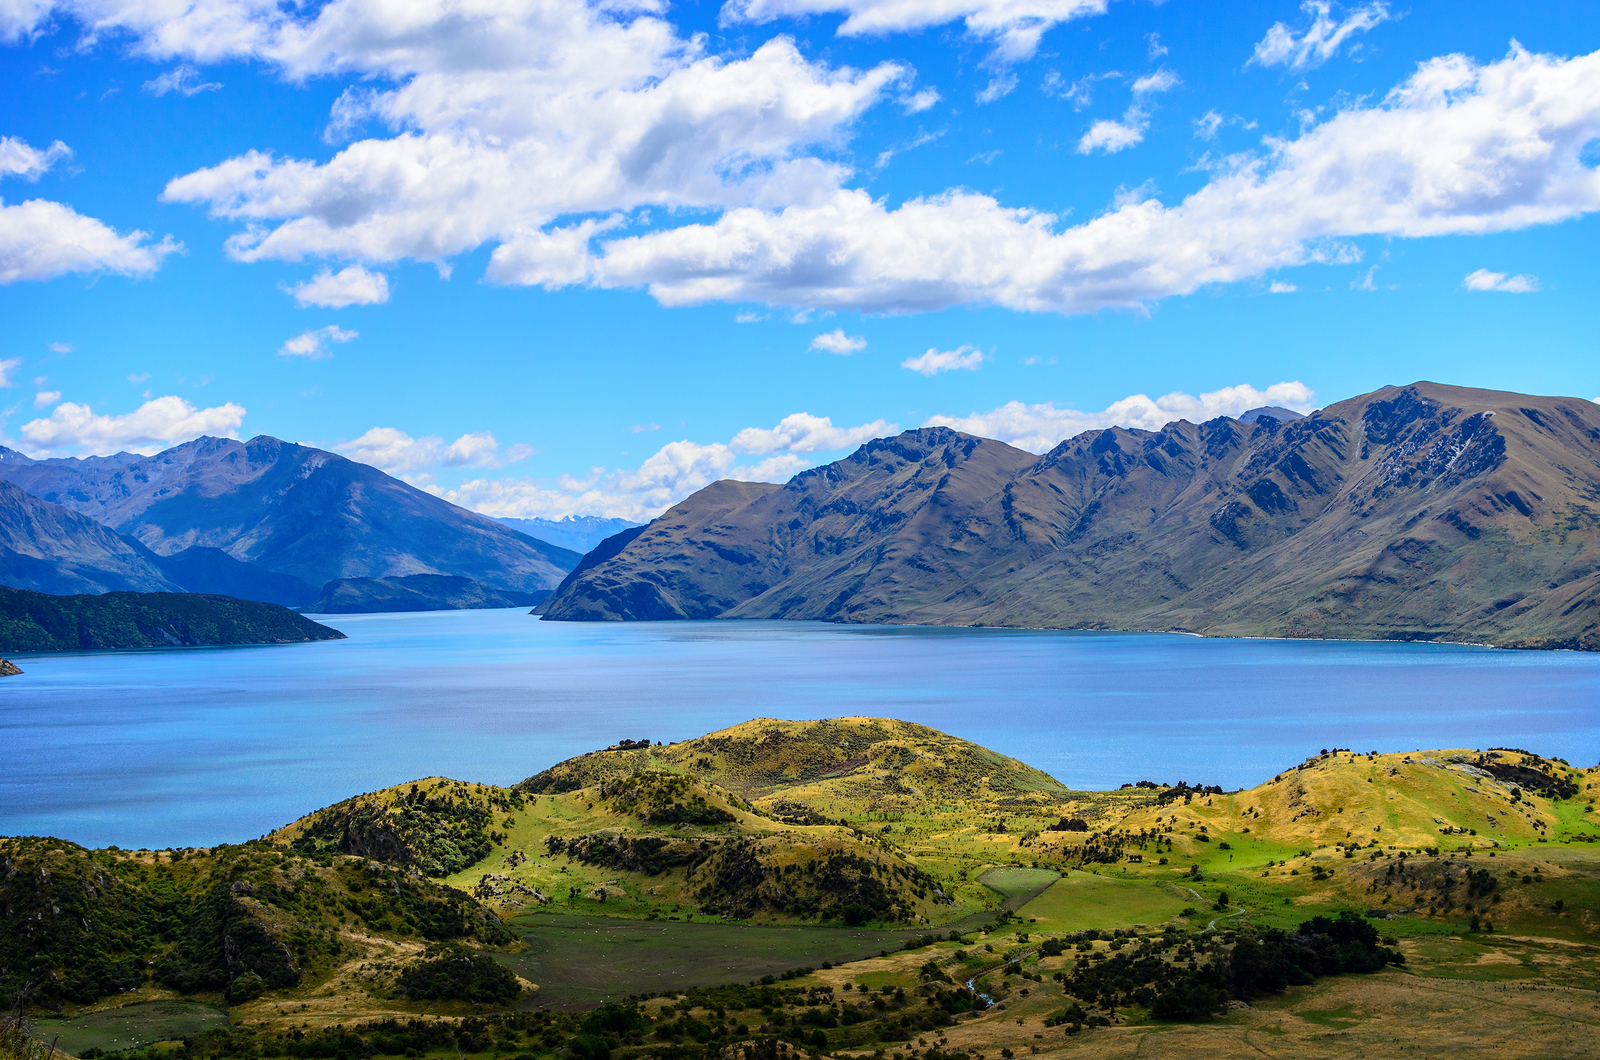 Lake Wanaka and Mt Aspiring